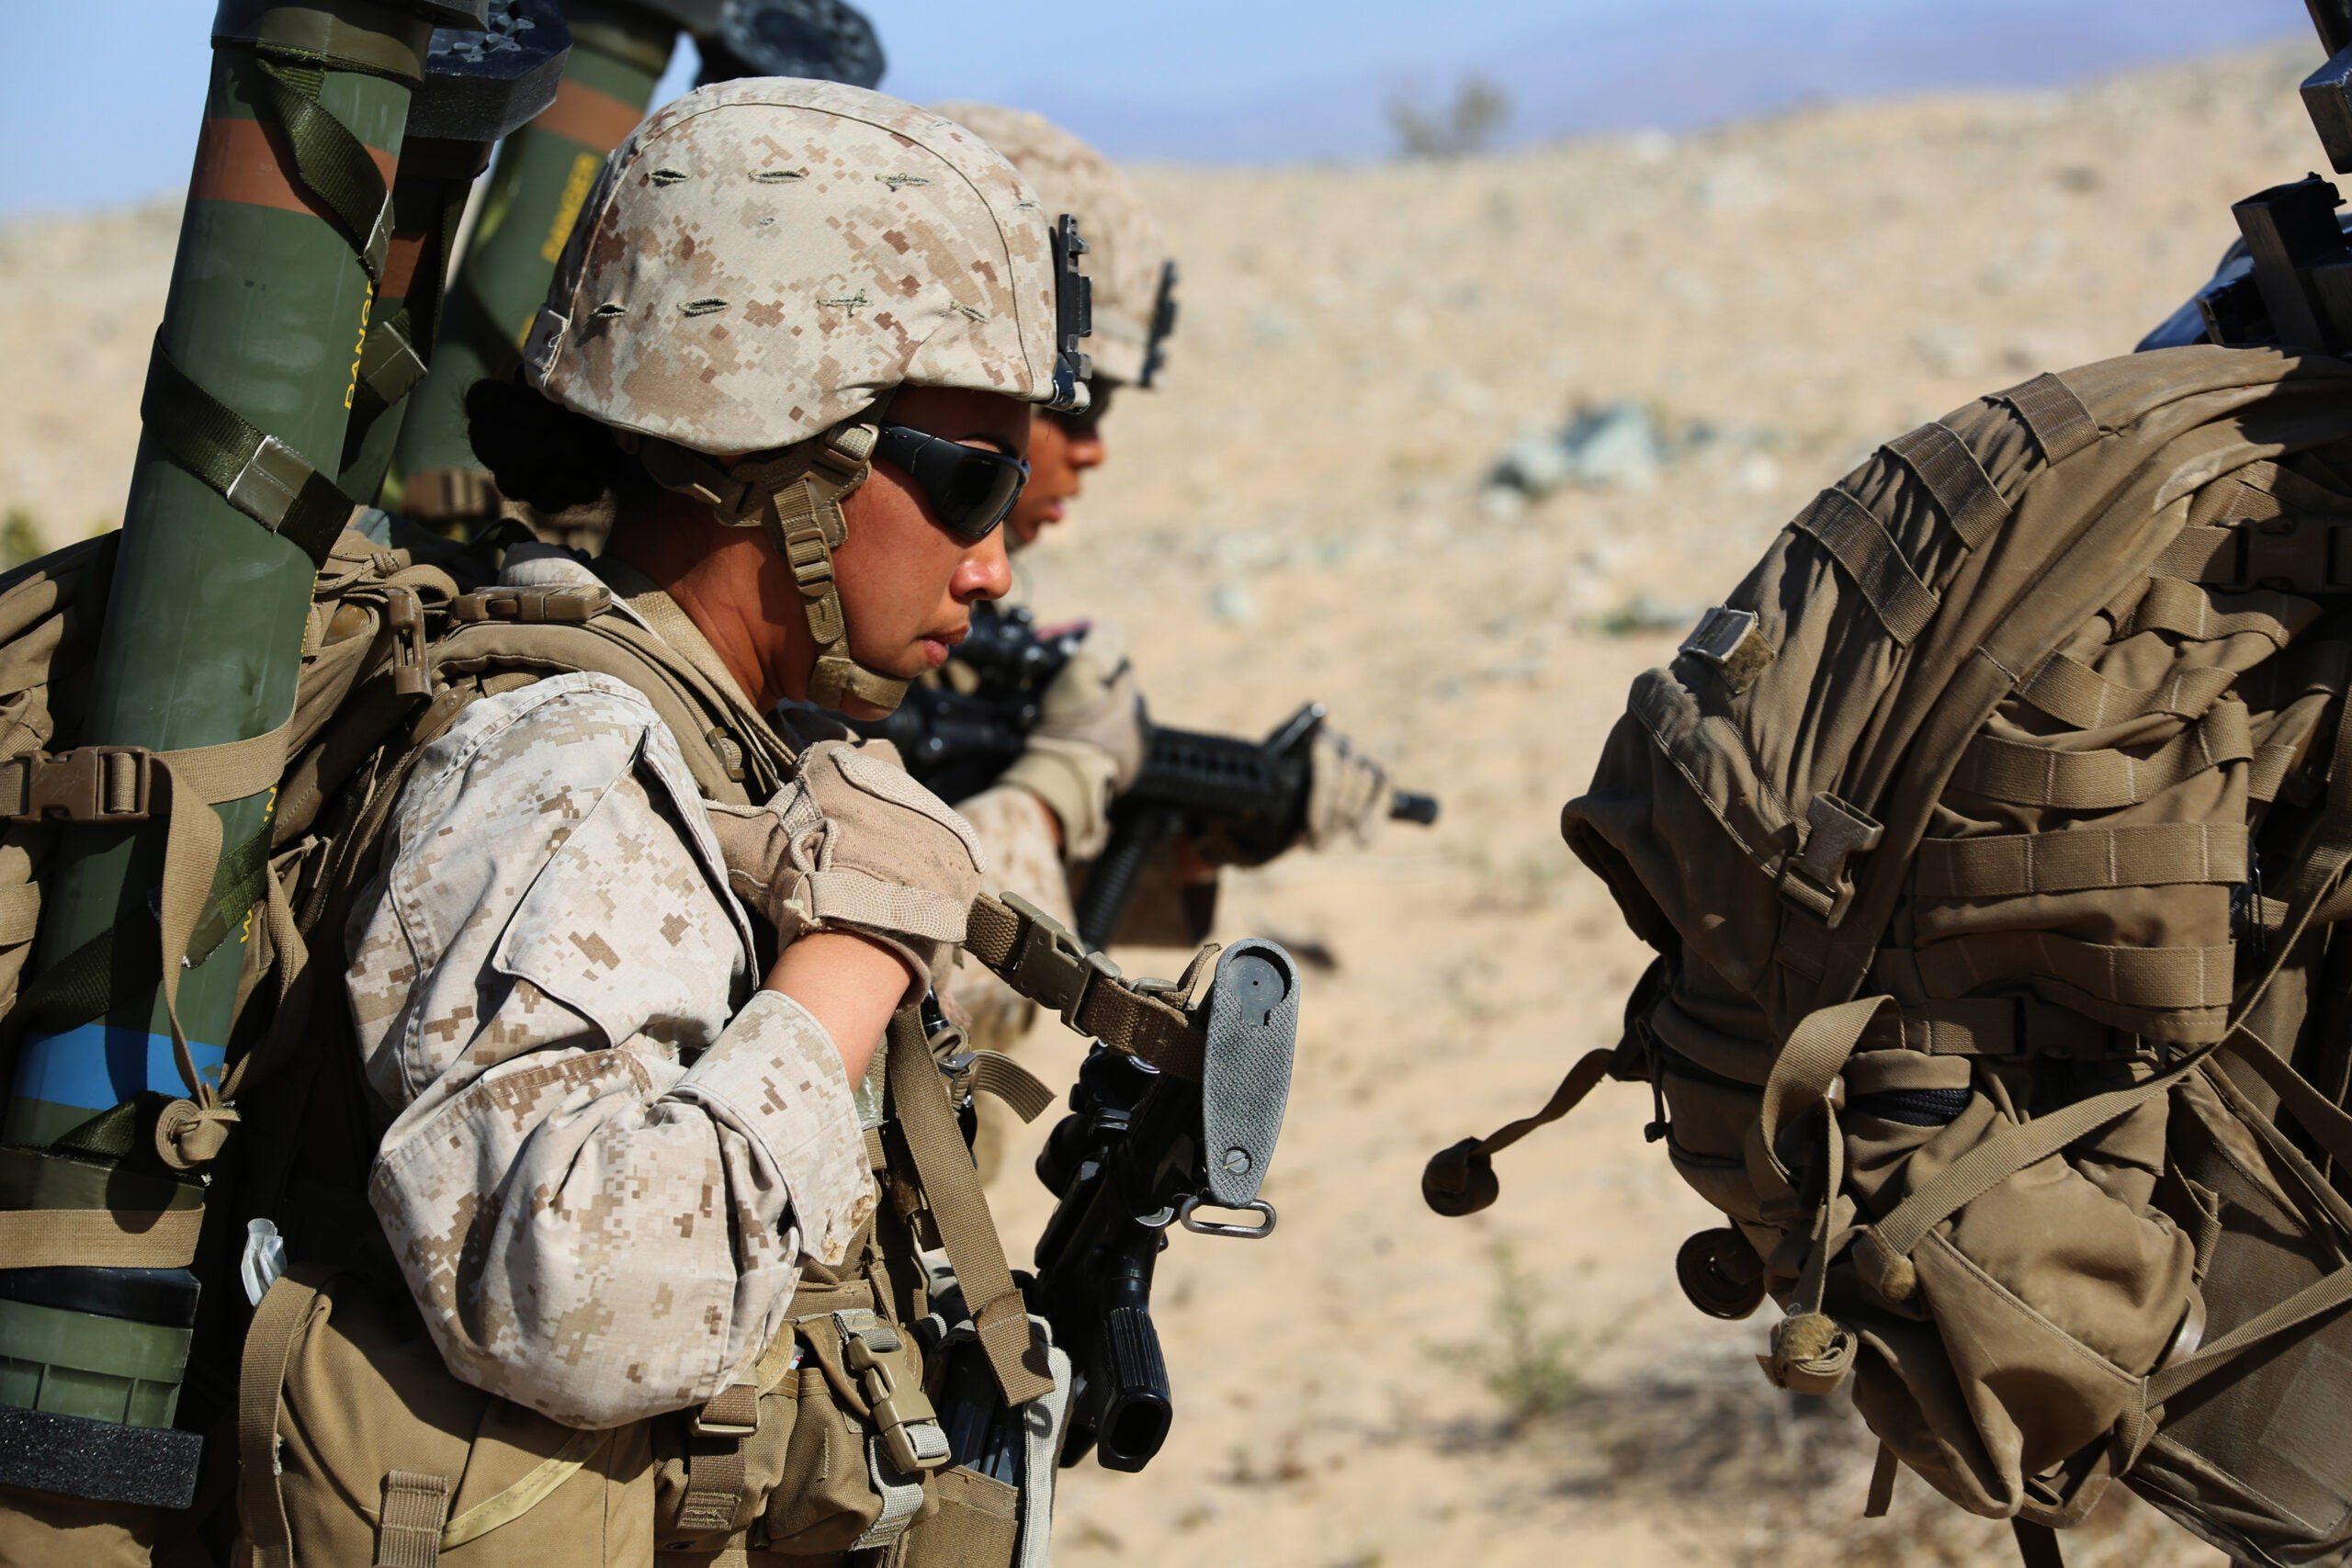 The military says it's finally designing body armor for women for the umpteenth time this decade